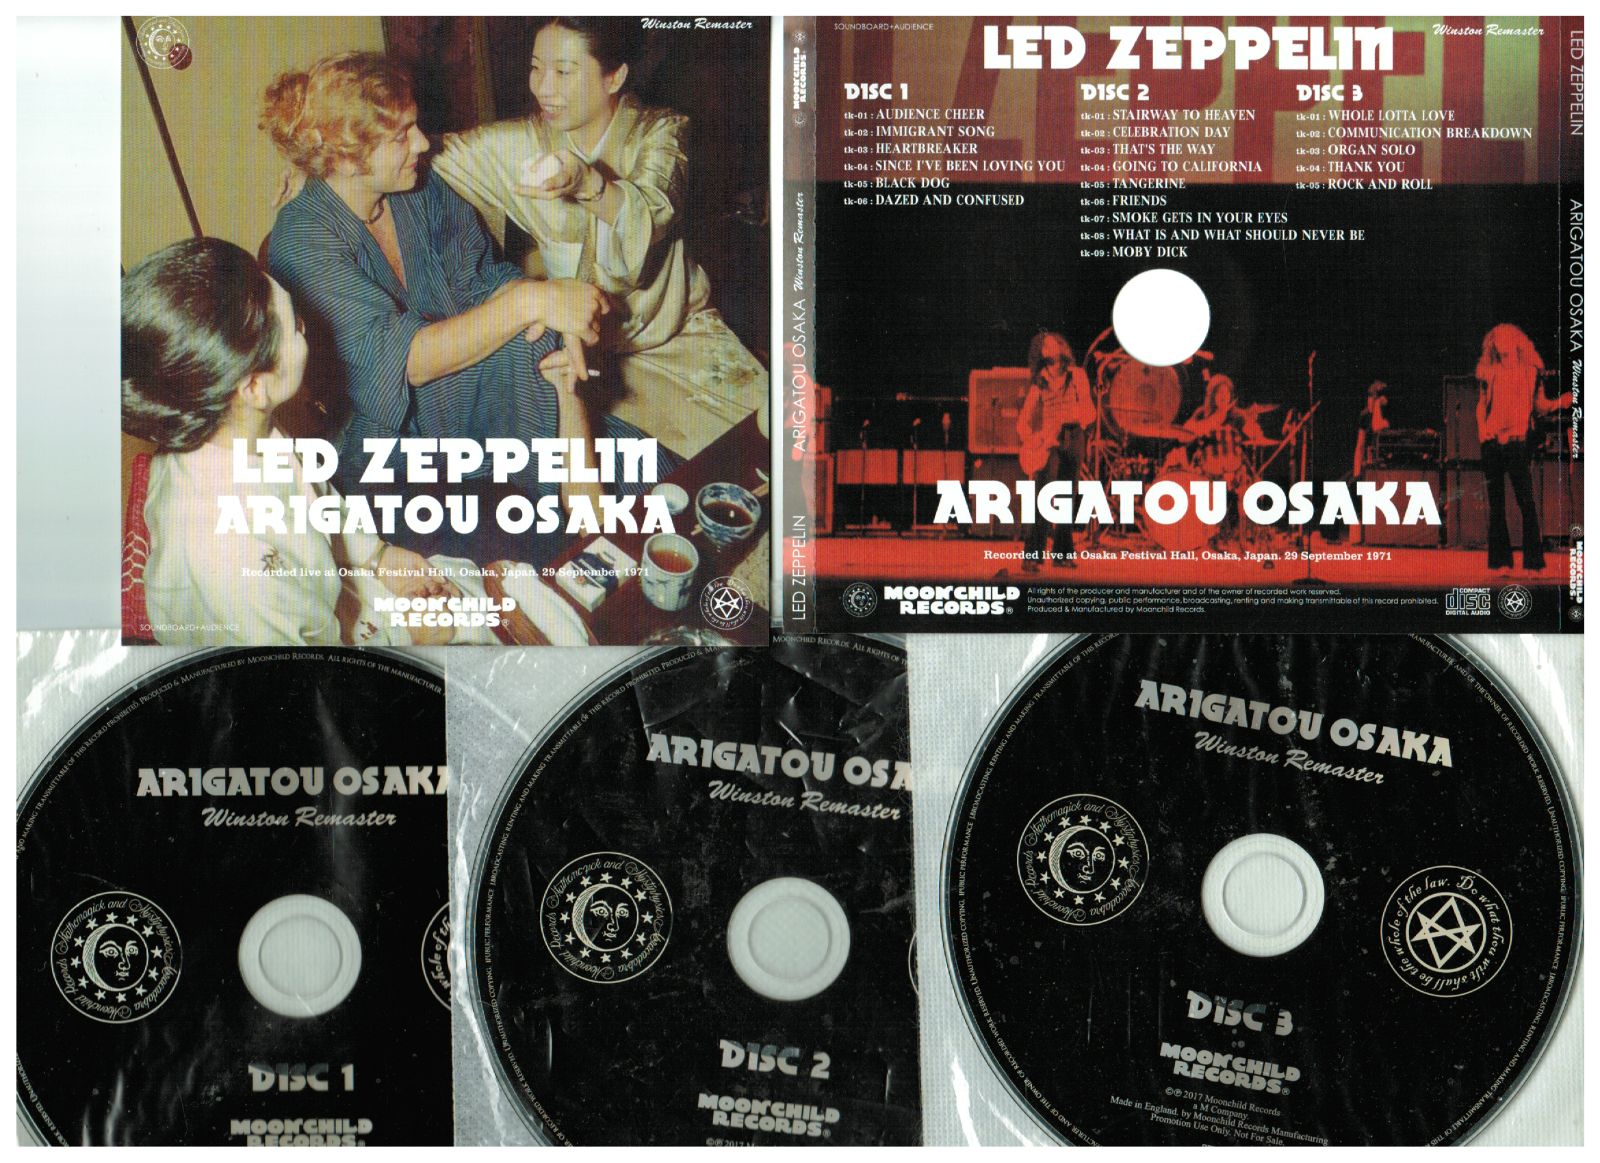 popsike com - Led Zeppelin 3CD Arigatou Osaka Festival Hall 9/29/71